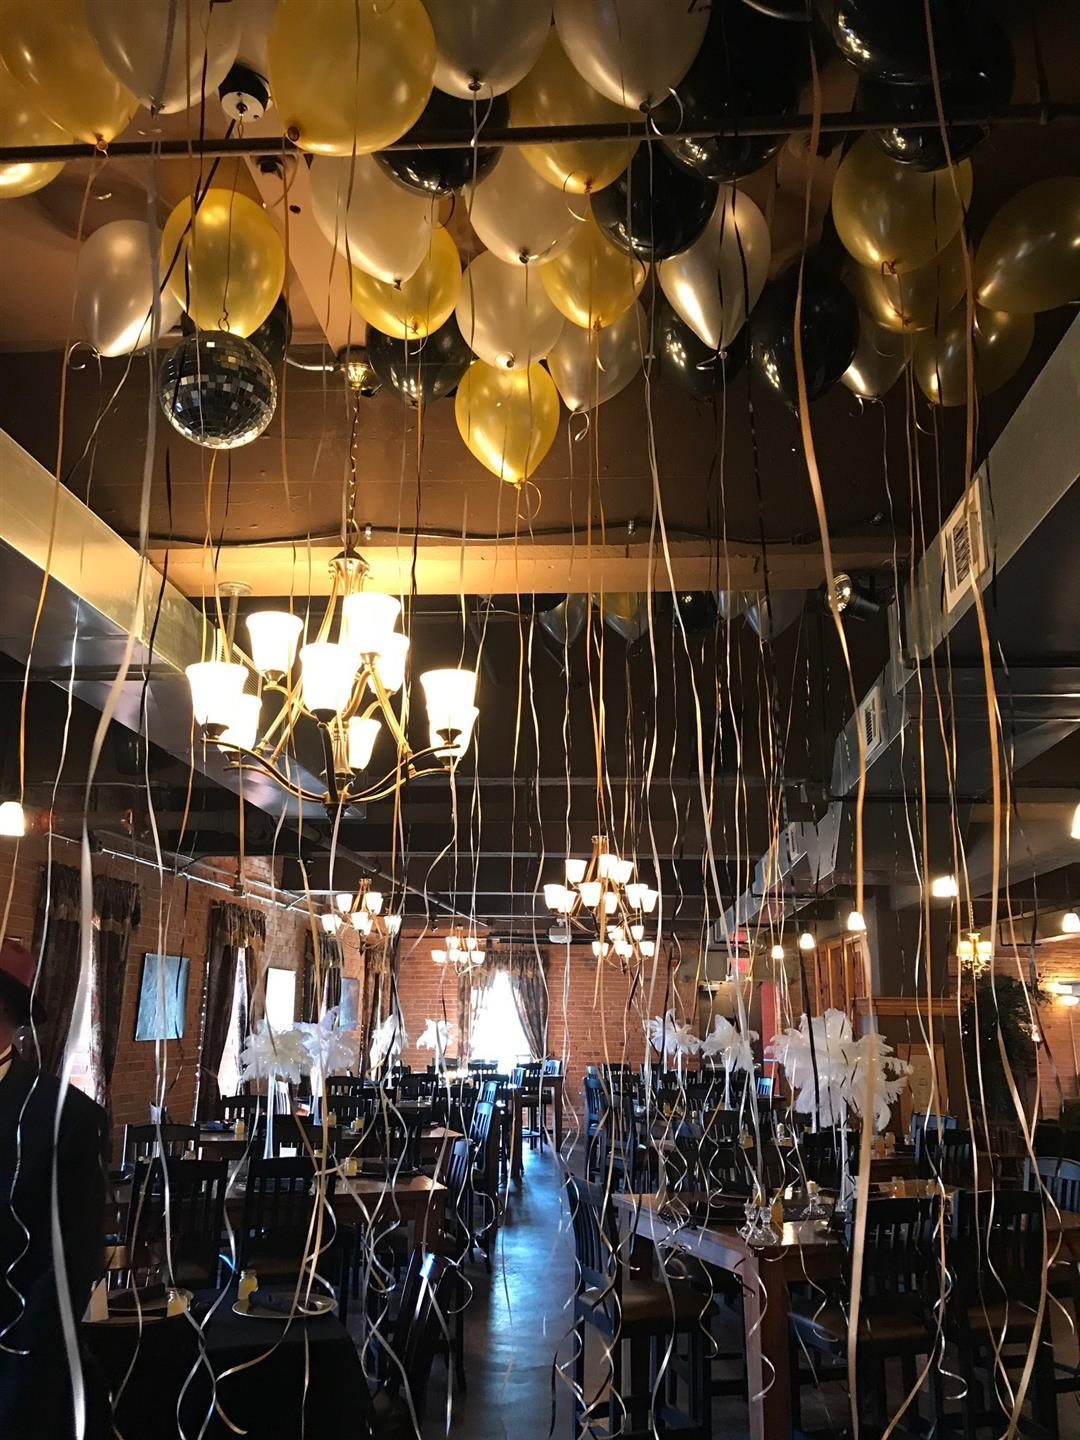 the ceiling with multiple balloons floating at the top